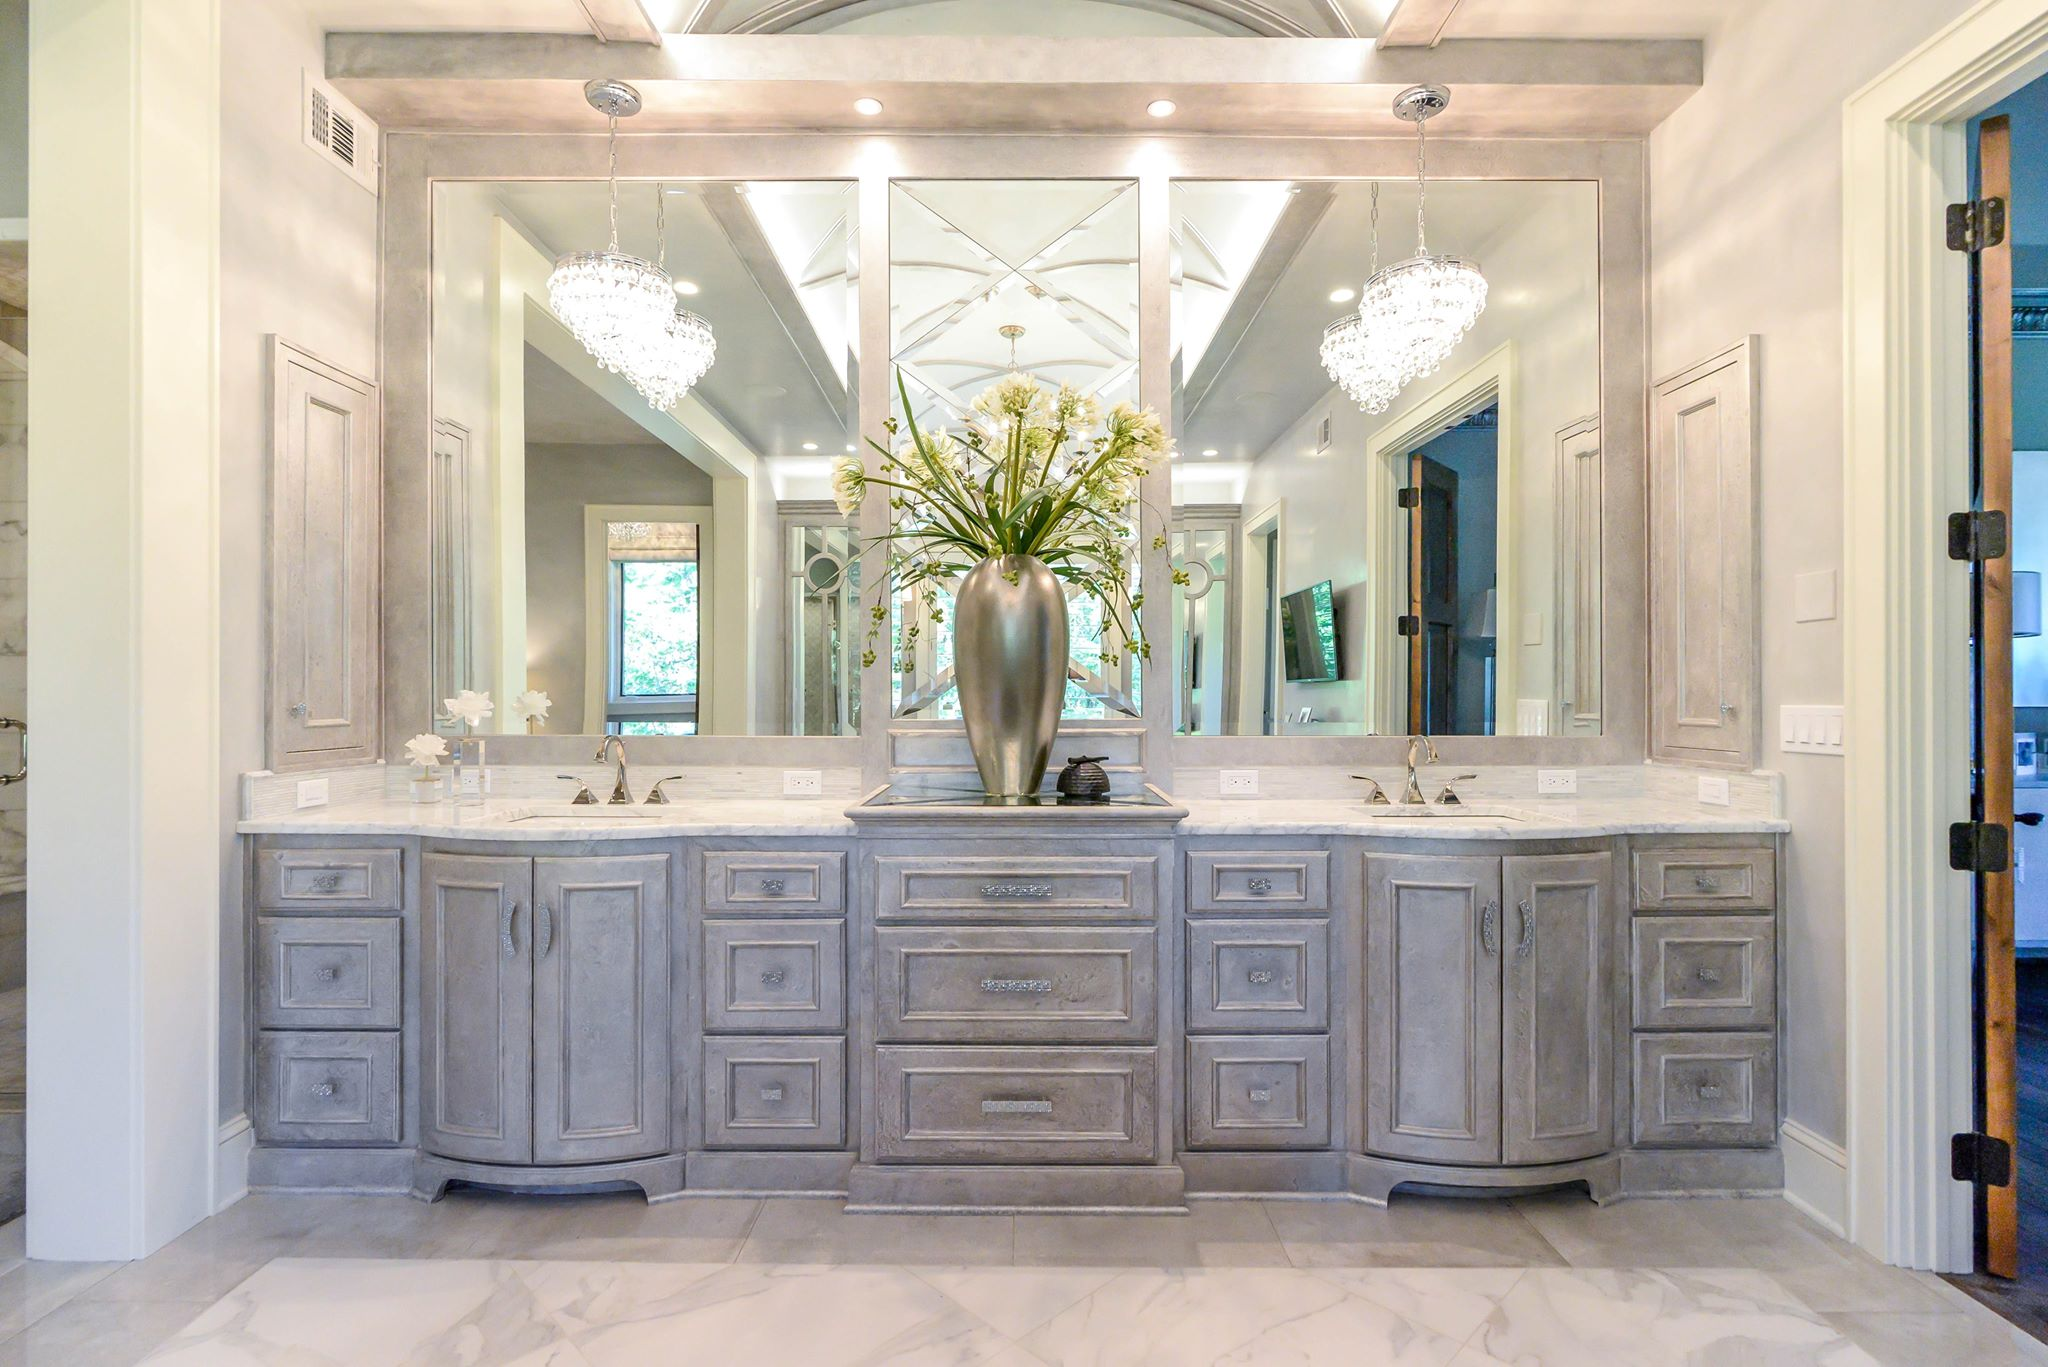 Custom bathroom cabinets designed